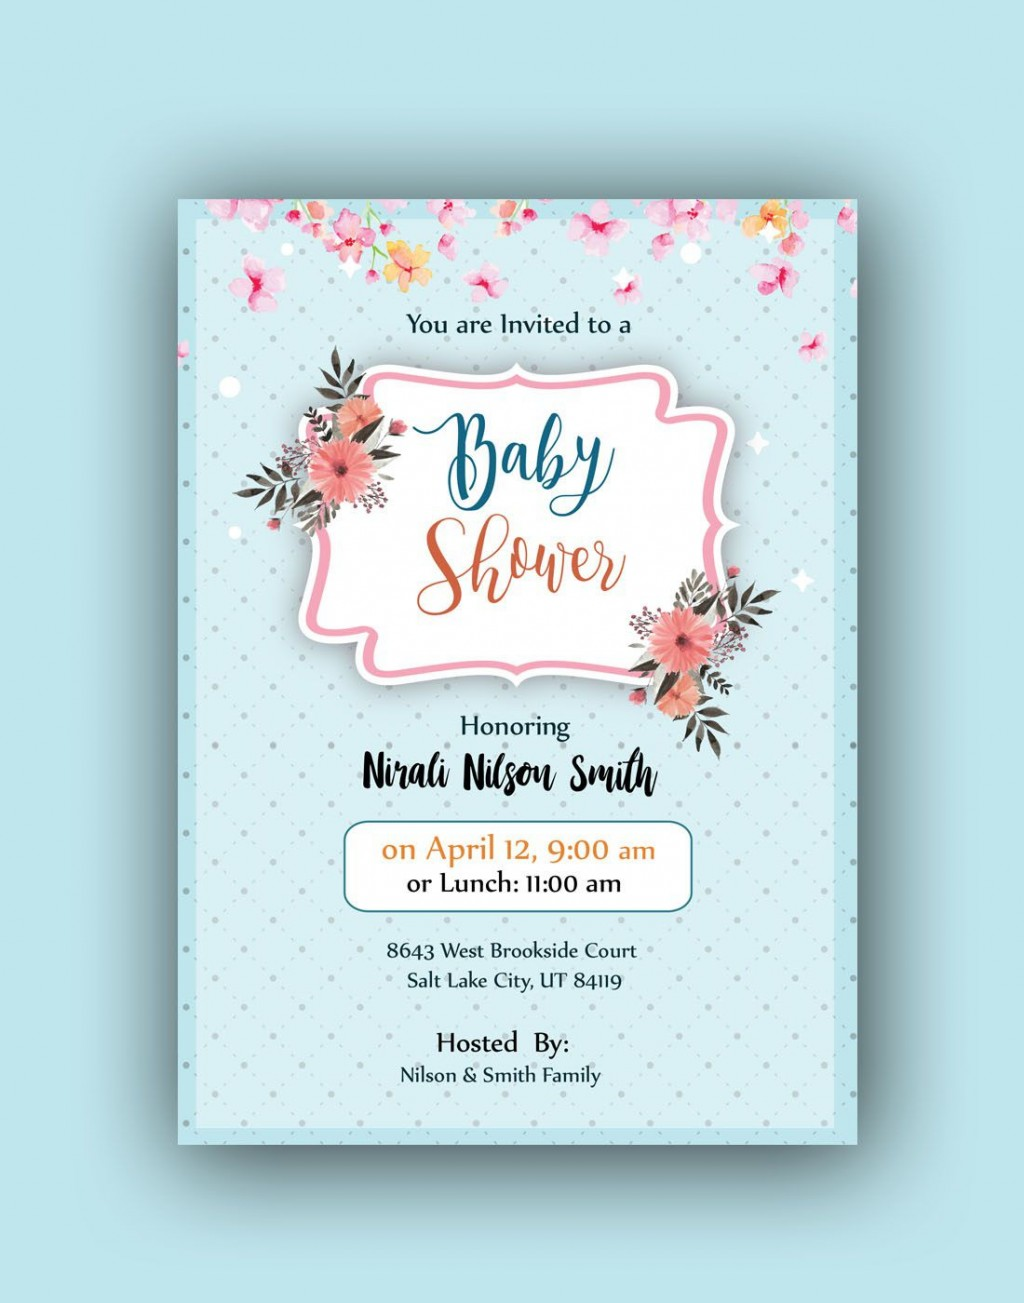 007 Stirring Baby Shower Card Template Psd Concept Large